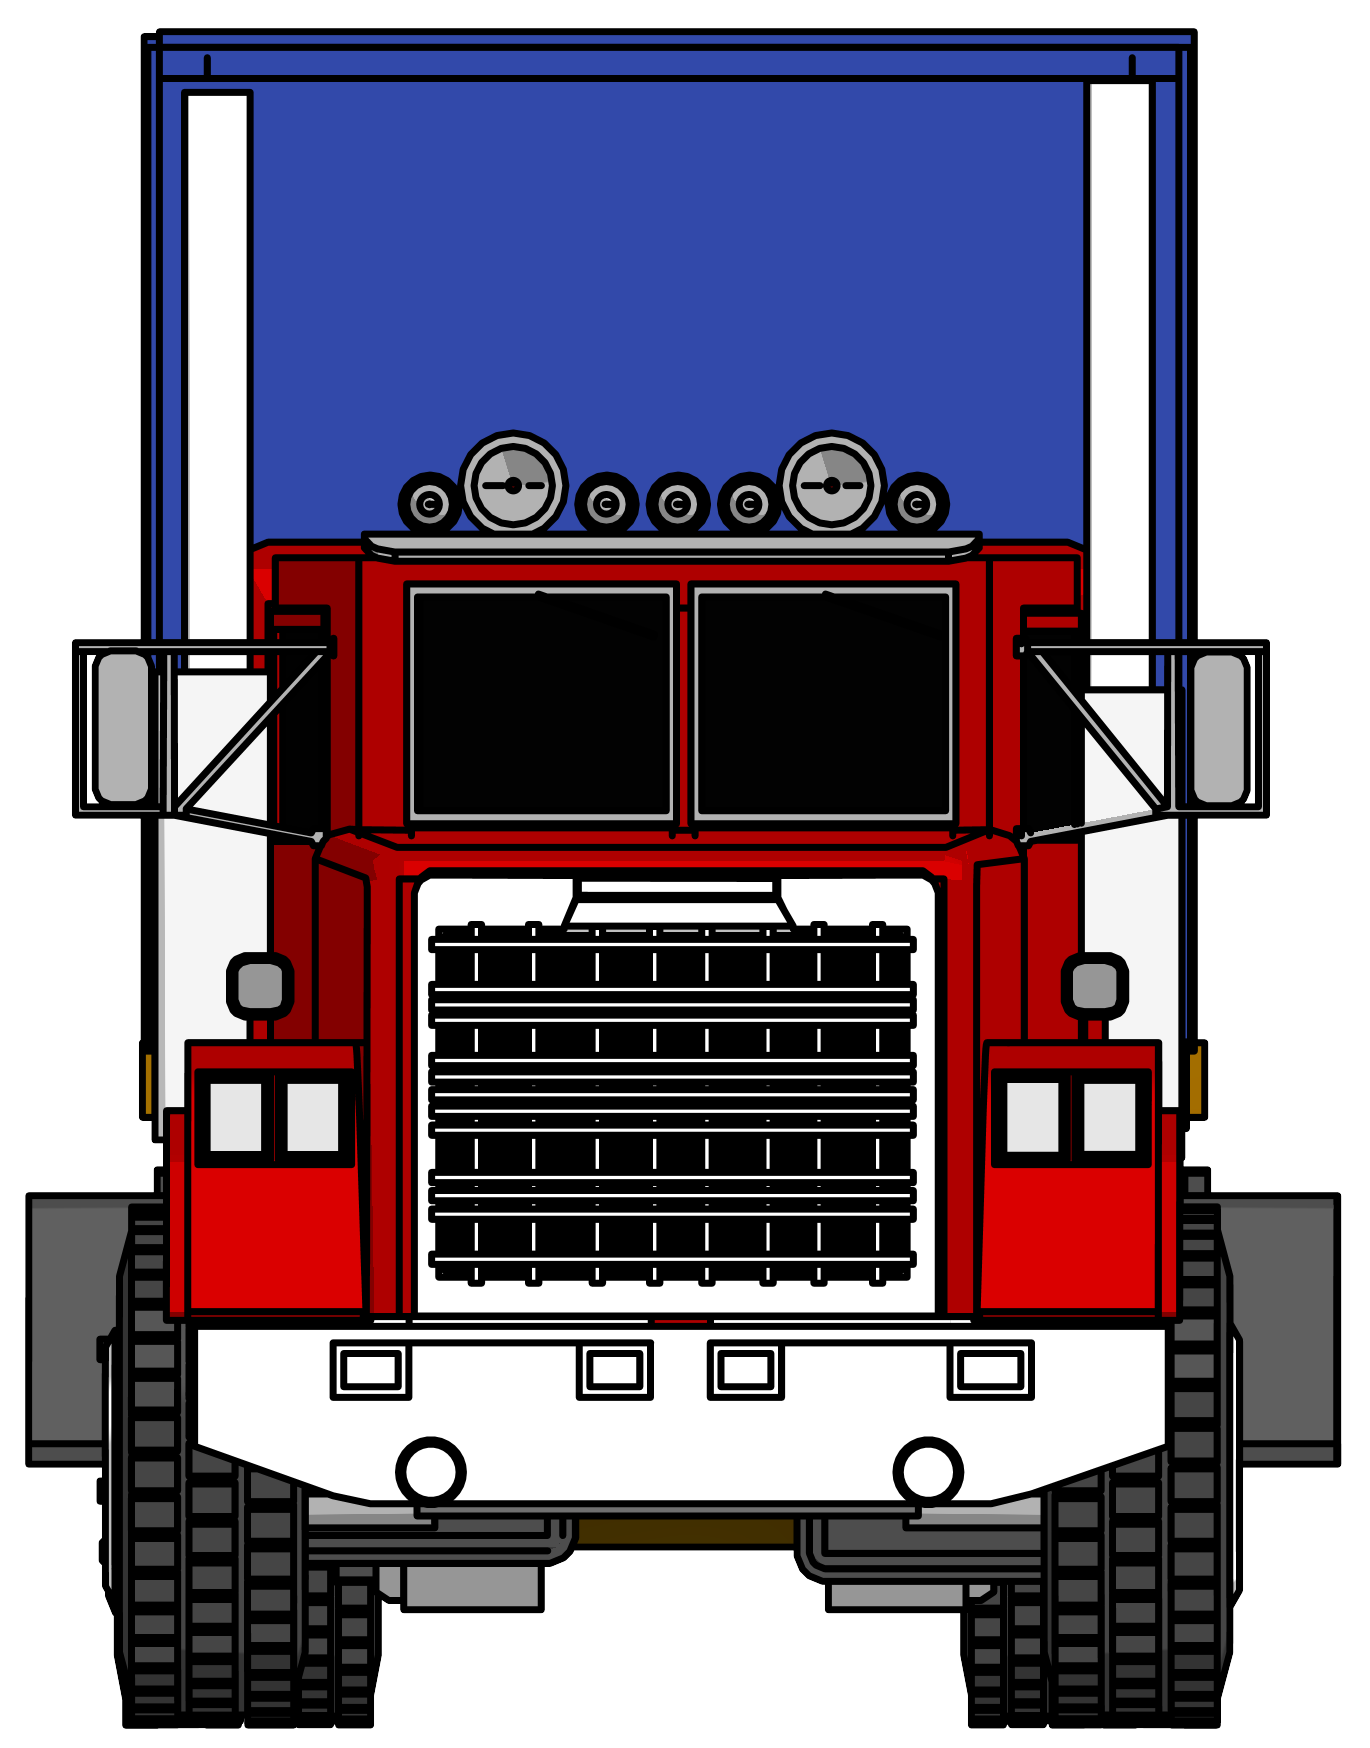 Truck front view clipart picture royalty free stock Industrial Truck Big Truck Clipart Png Image Front View ... picture royalty free stock